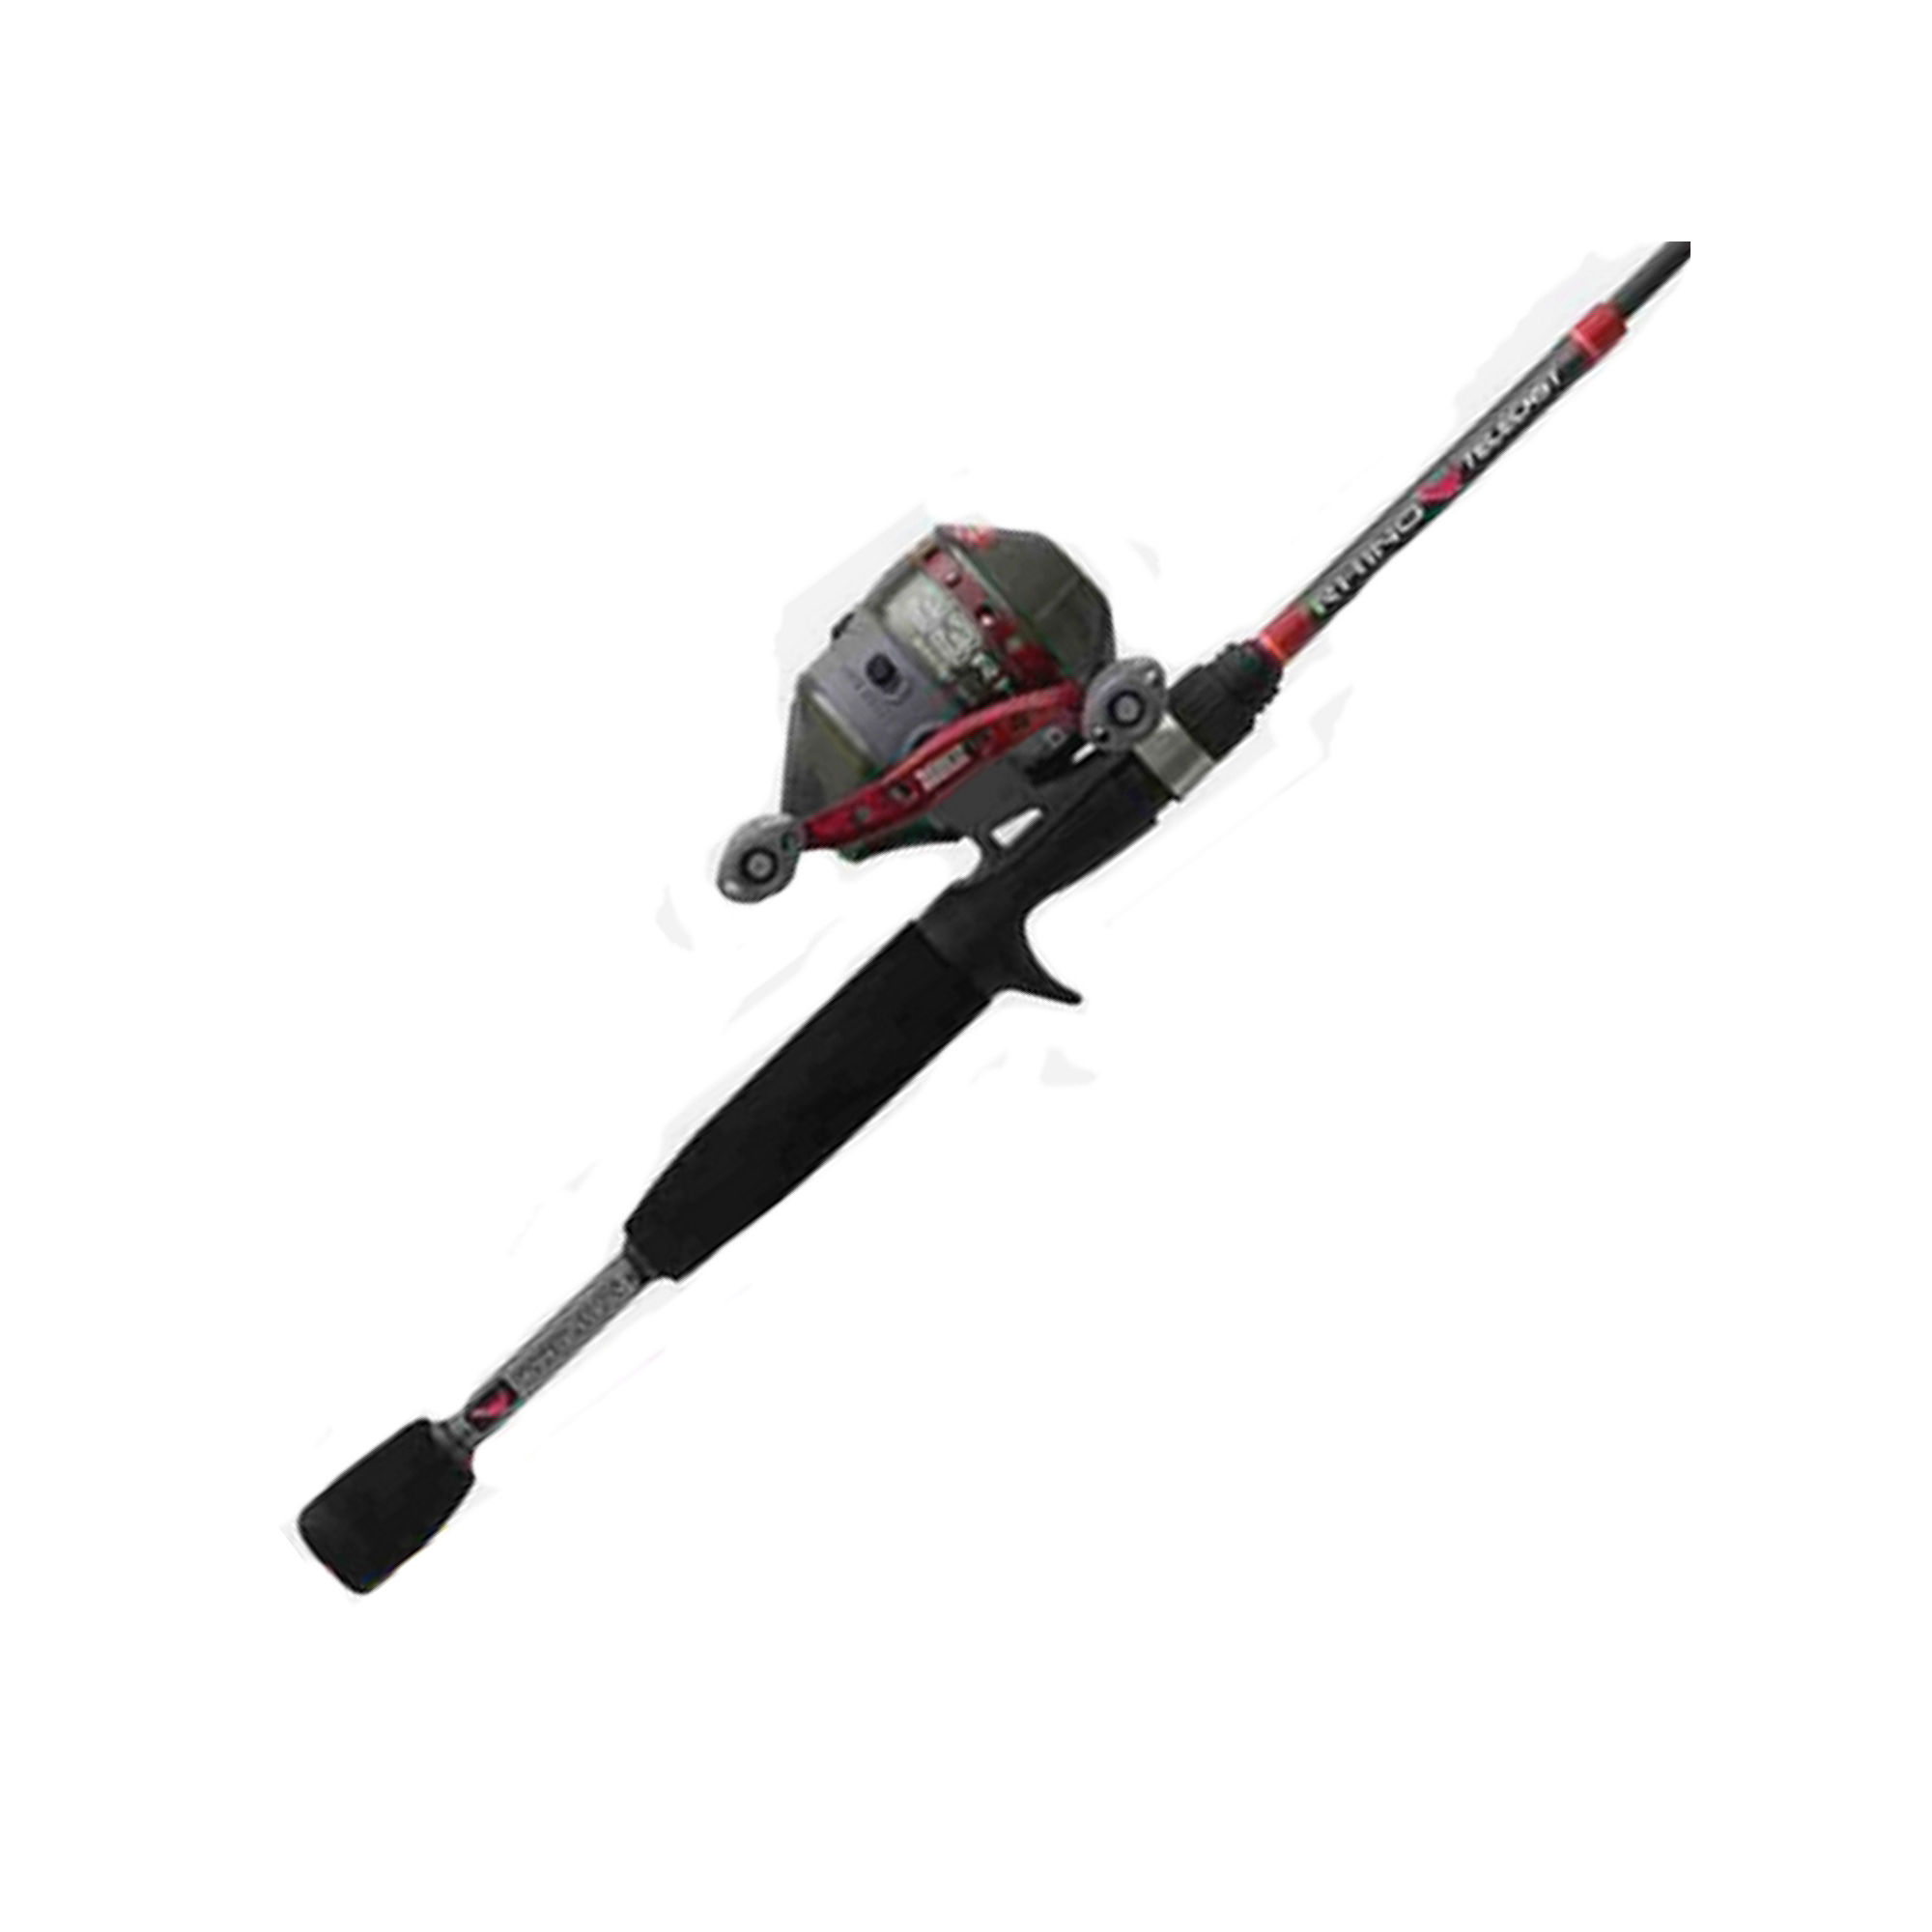 032784617303 upc rhino fishing zr33 telecast combo 6 for Rhino fishing pole